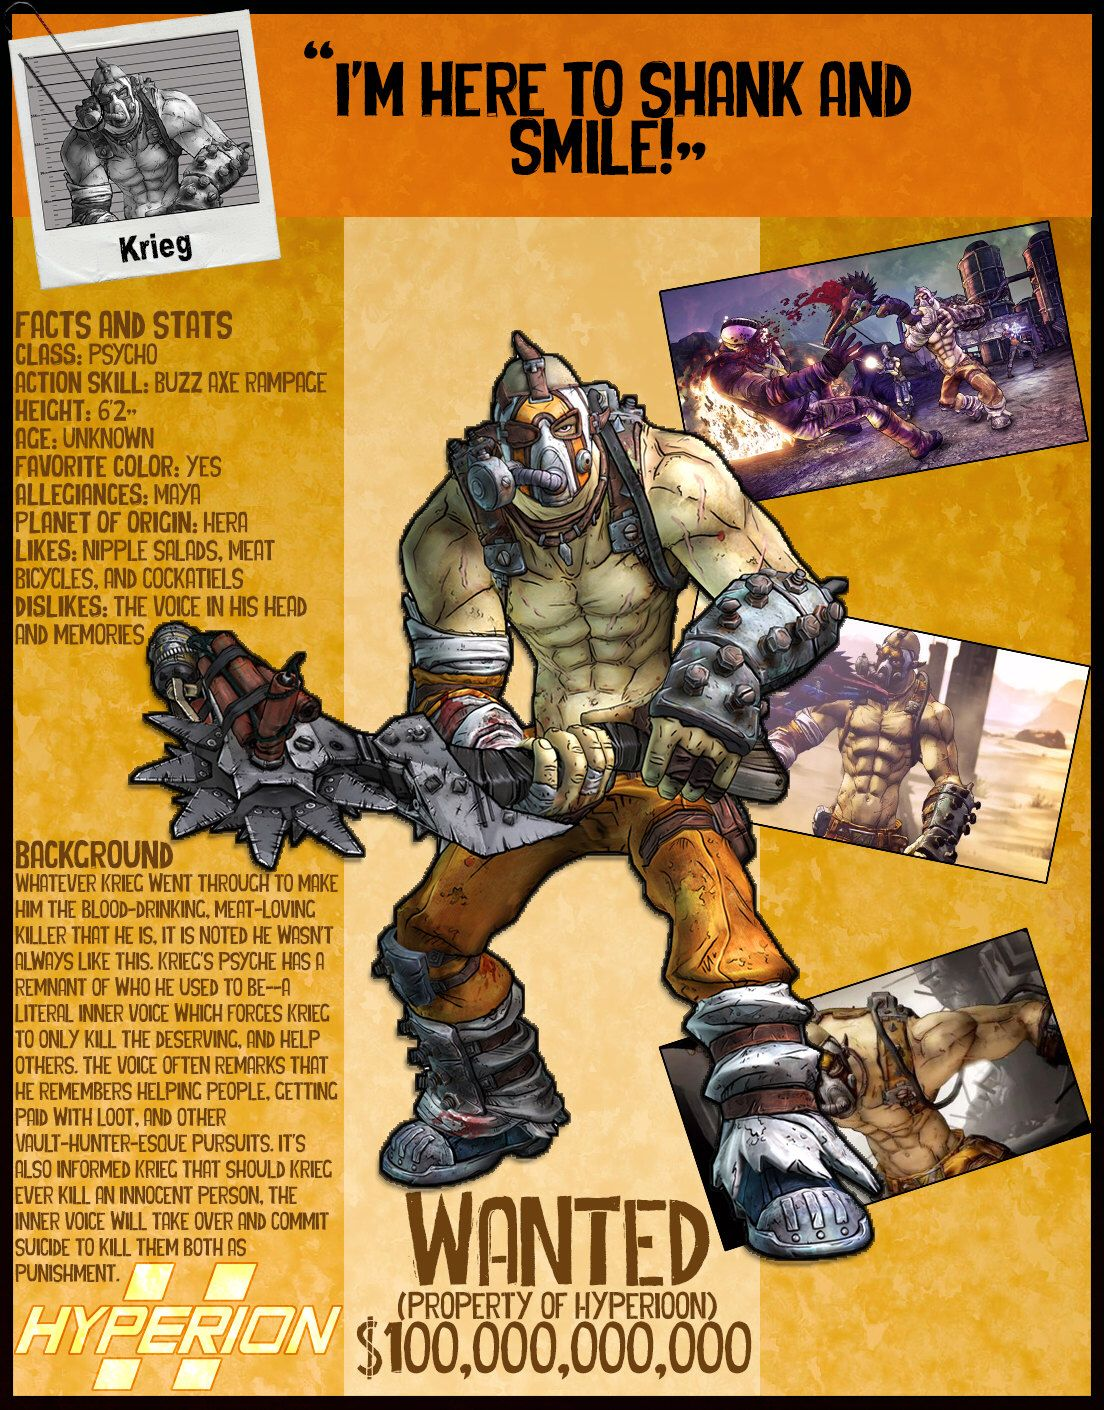 borderlands 2 wanted posters krieg by